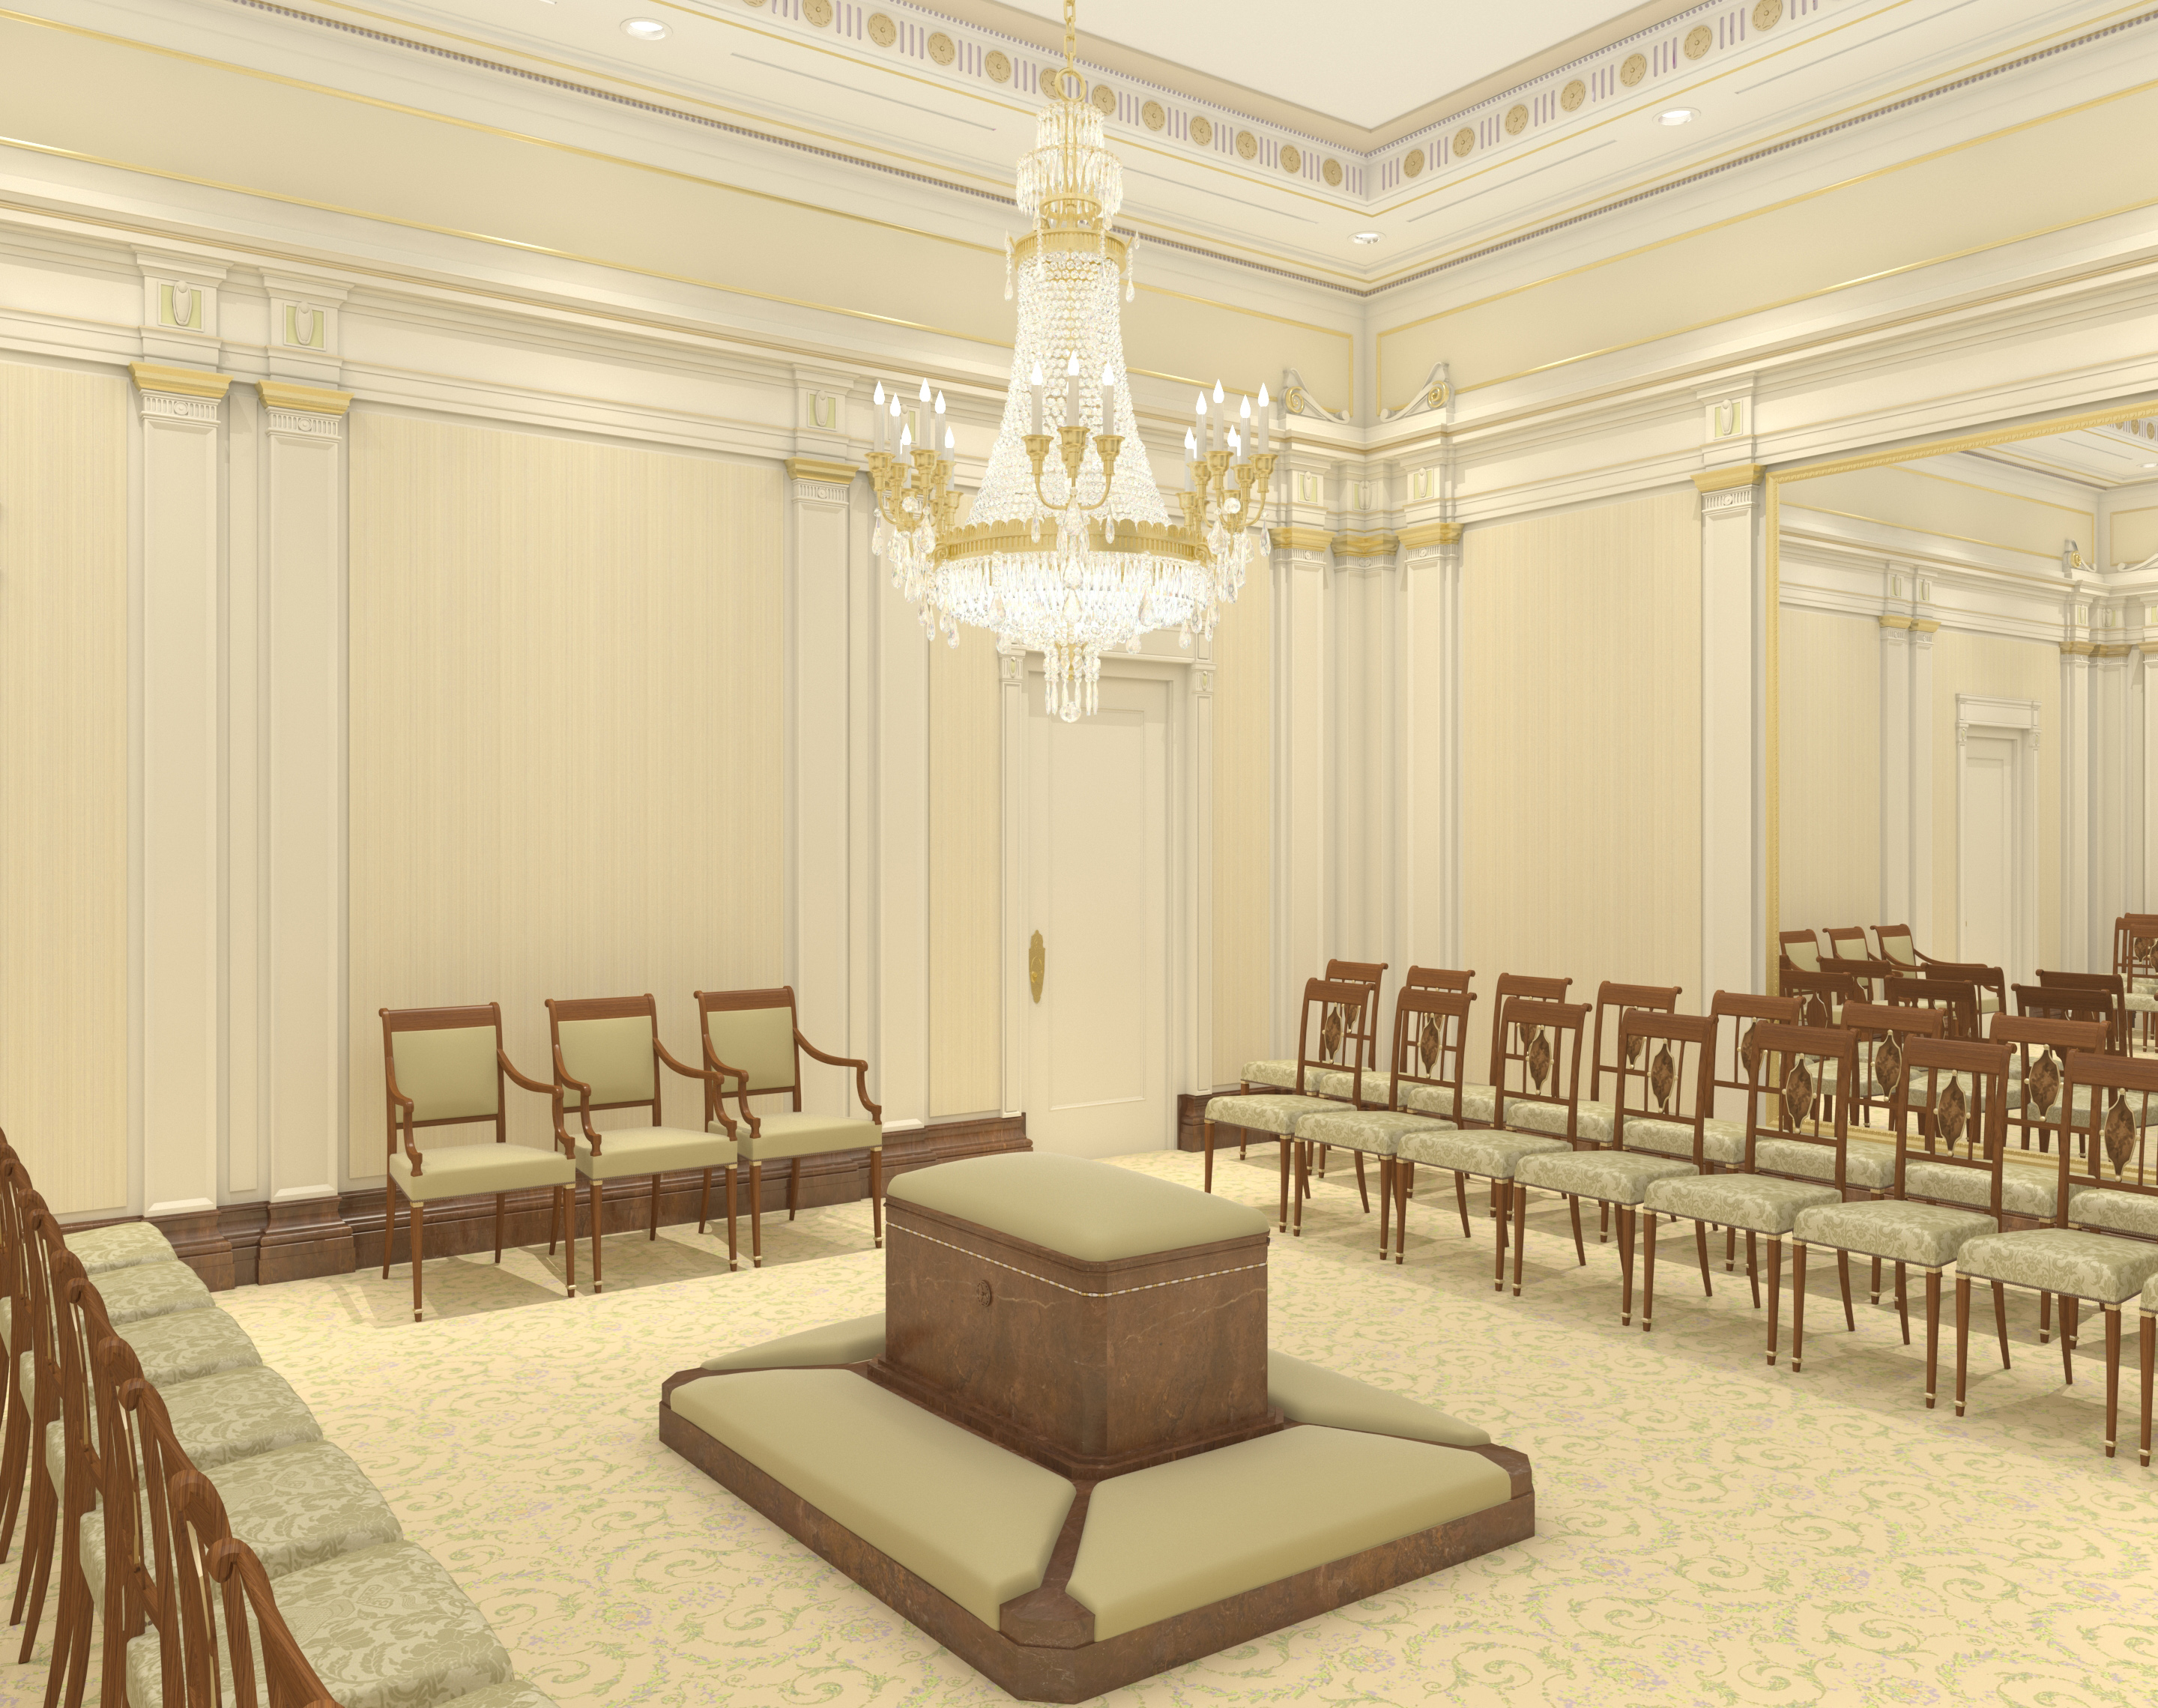 Rendering of a sealing room in the Mesa Arizona Temple.